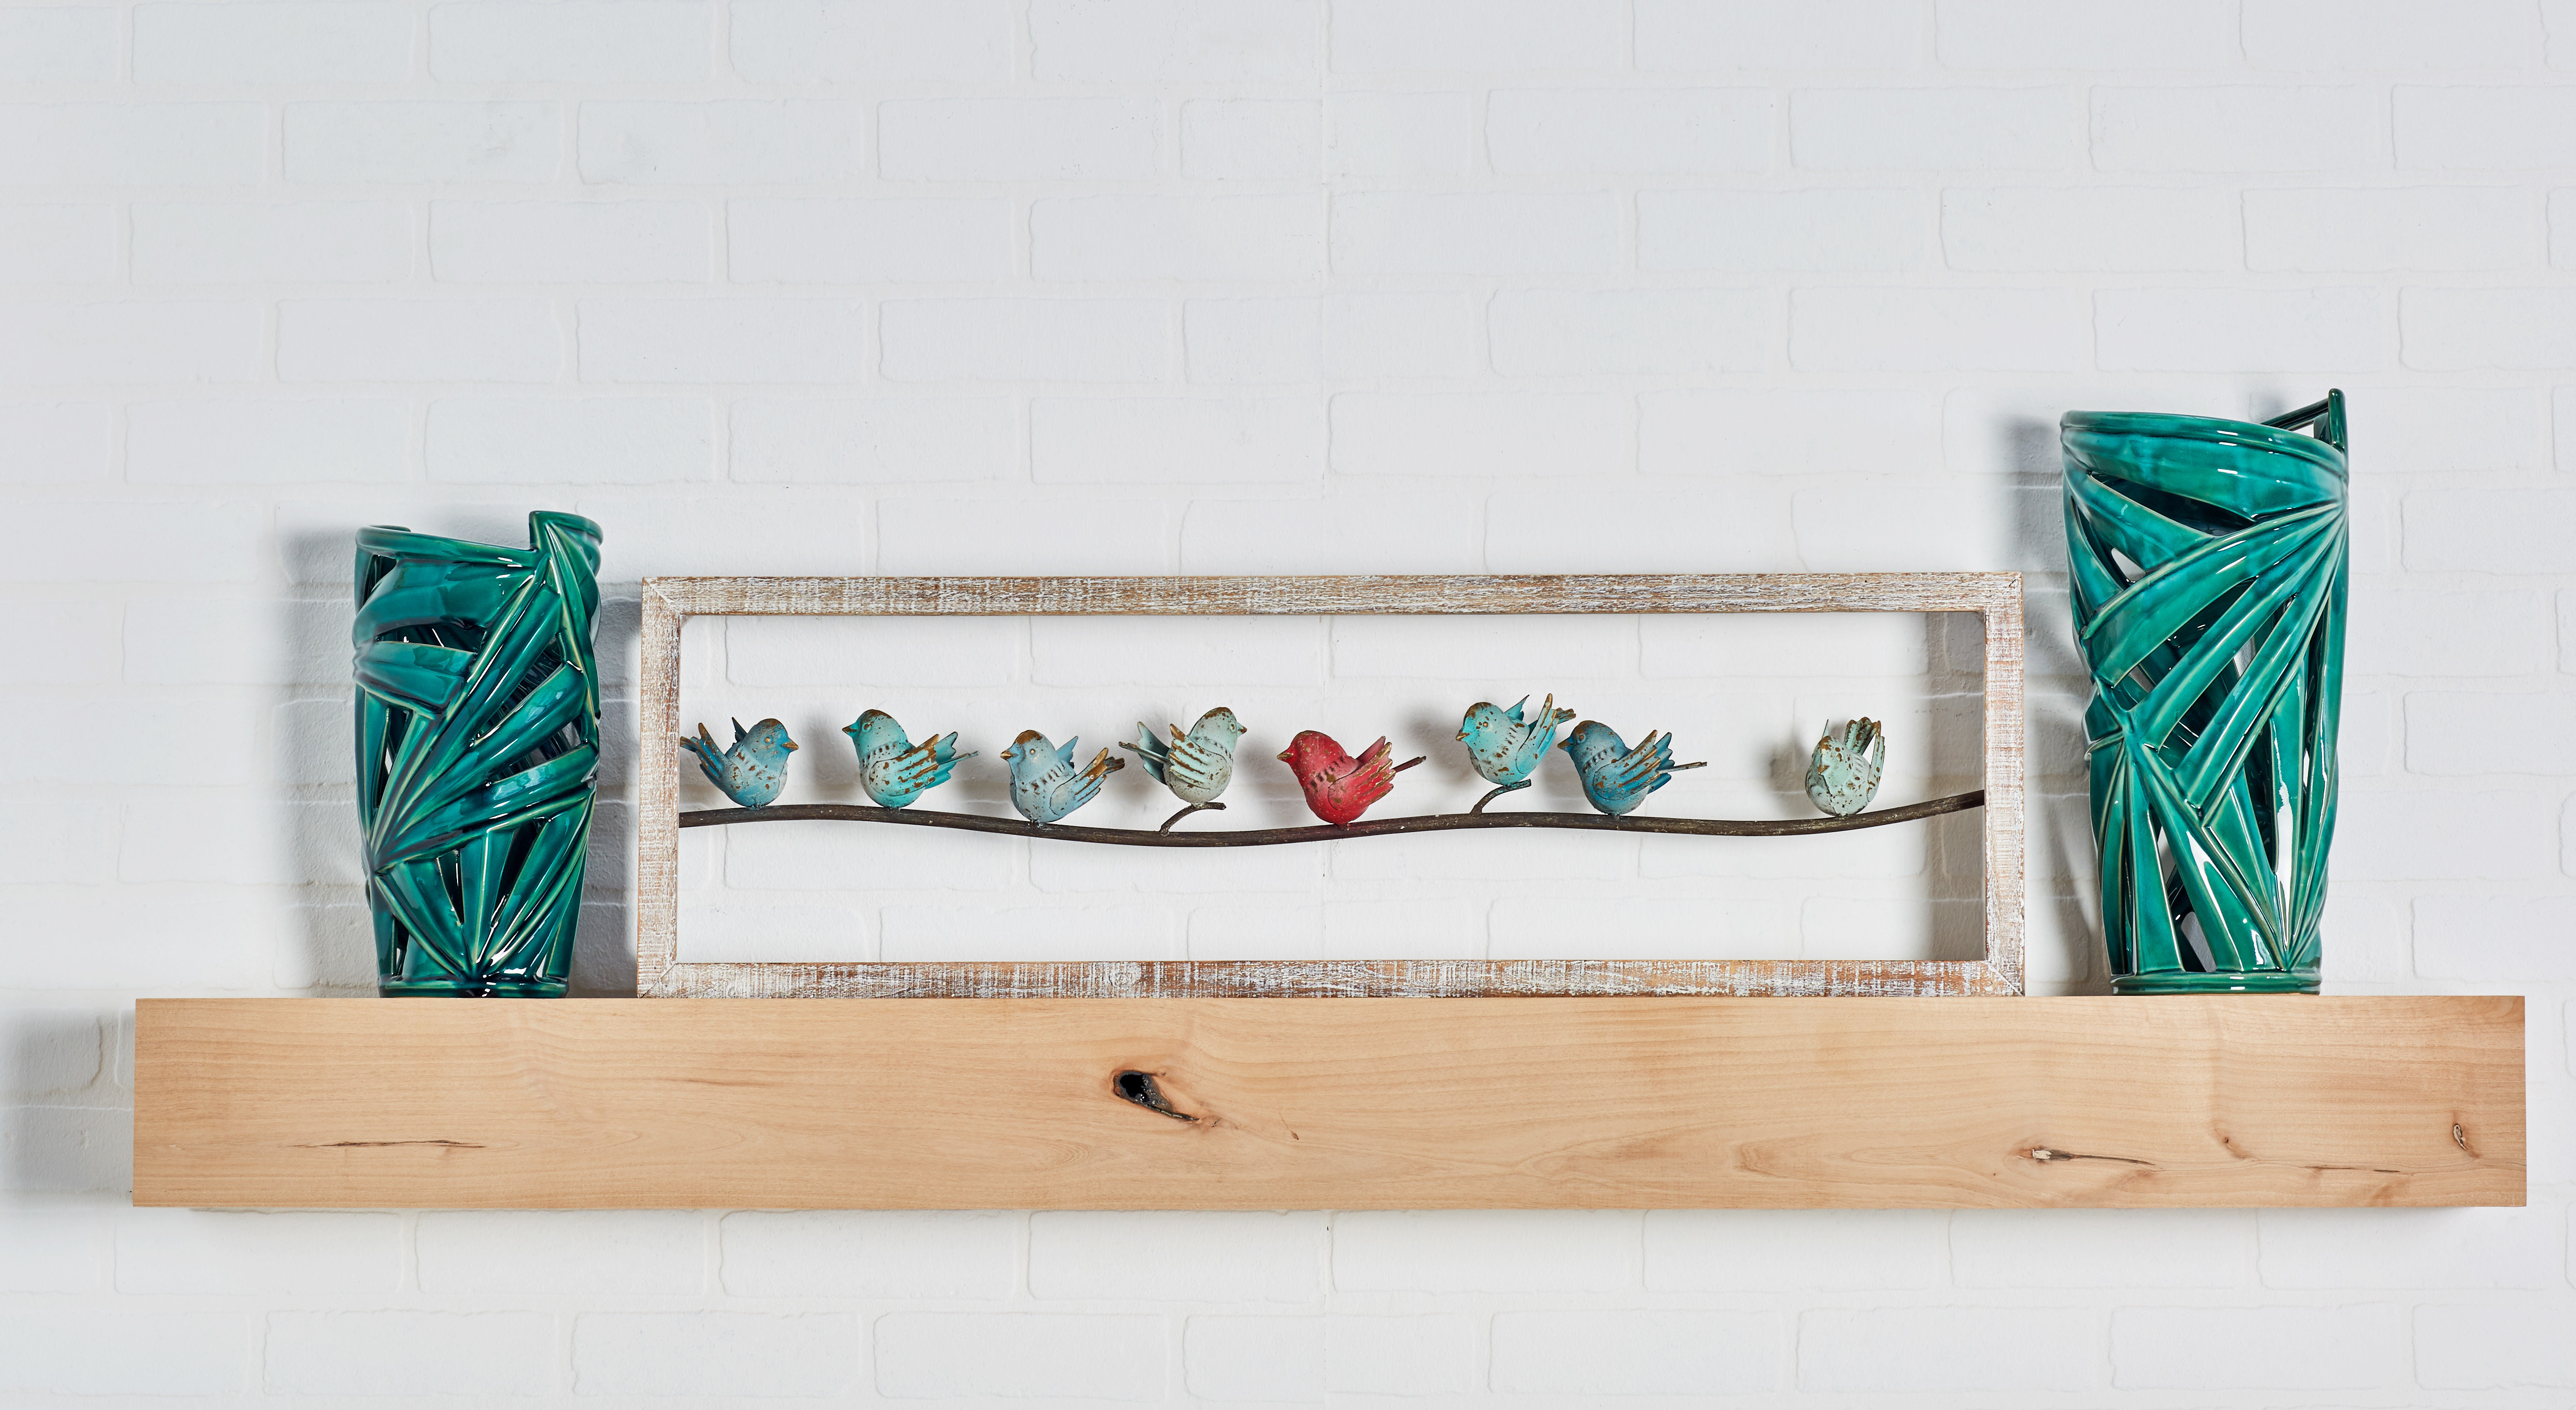 Rioux Birds On A Wire Wall Decor Regarding Well Known August Grove Natural Perched Birds On Wire Wall Decor & Reviews (Gallery 13 of 20)